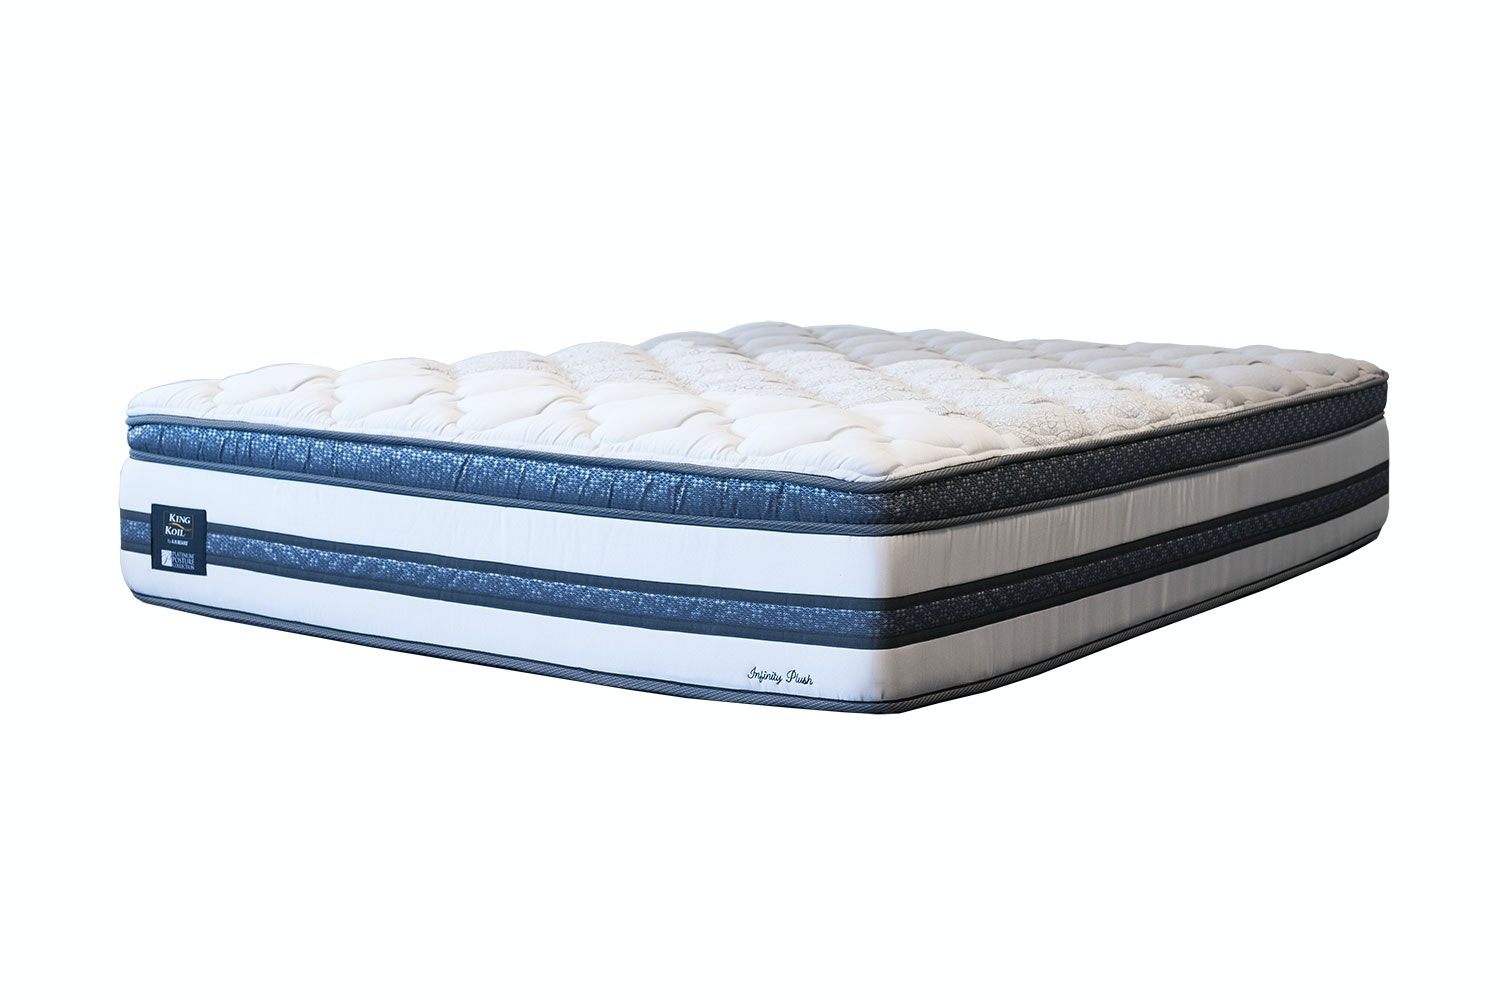 Infinity Plush Californian King Mattress by King Koil